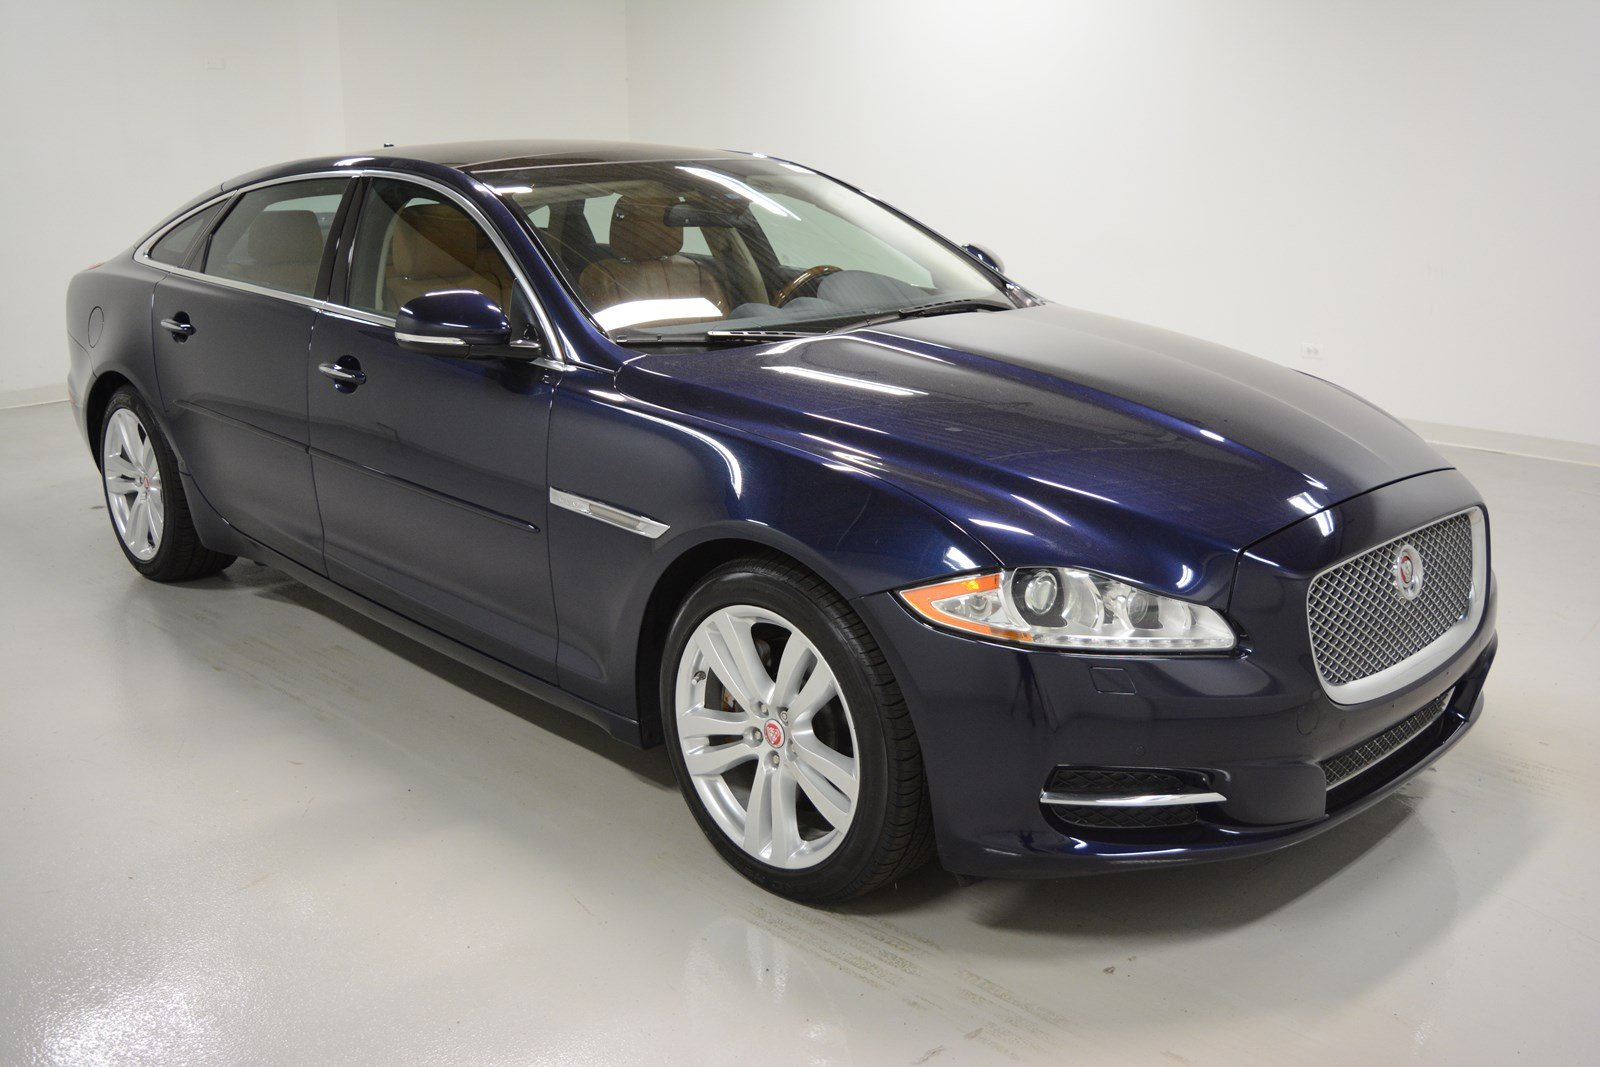 pre owned 2014 jaguar xjl xjl portfolio 4dr car in elmhurst j2415p jaguar elmhurst. Black Bedroom Furniture Sets. Home Design Ideas